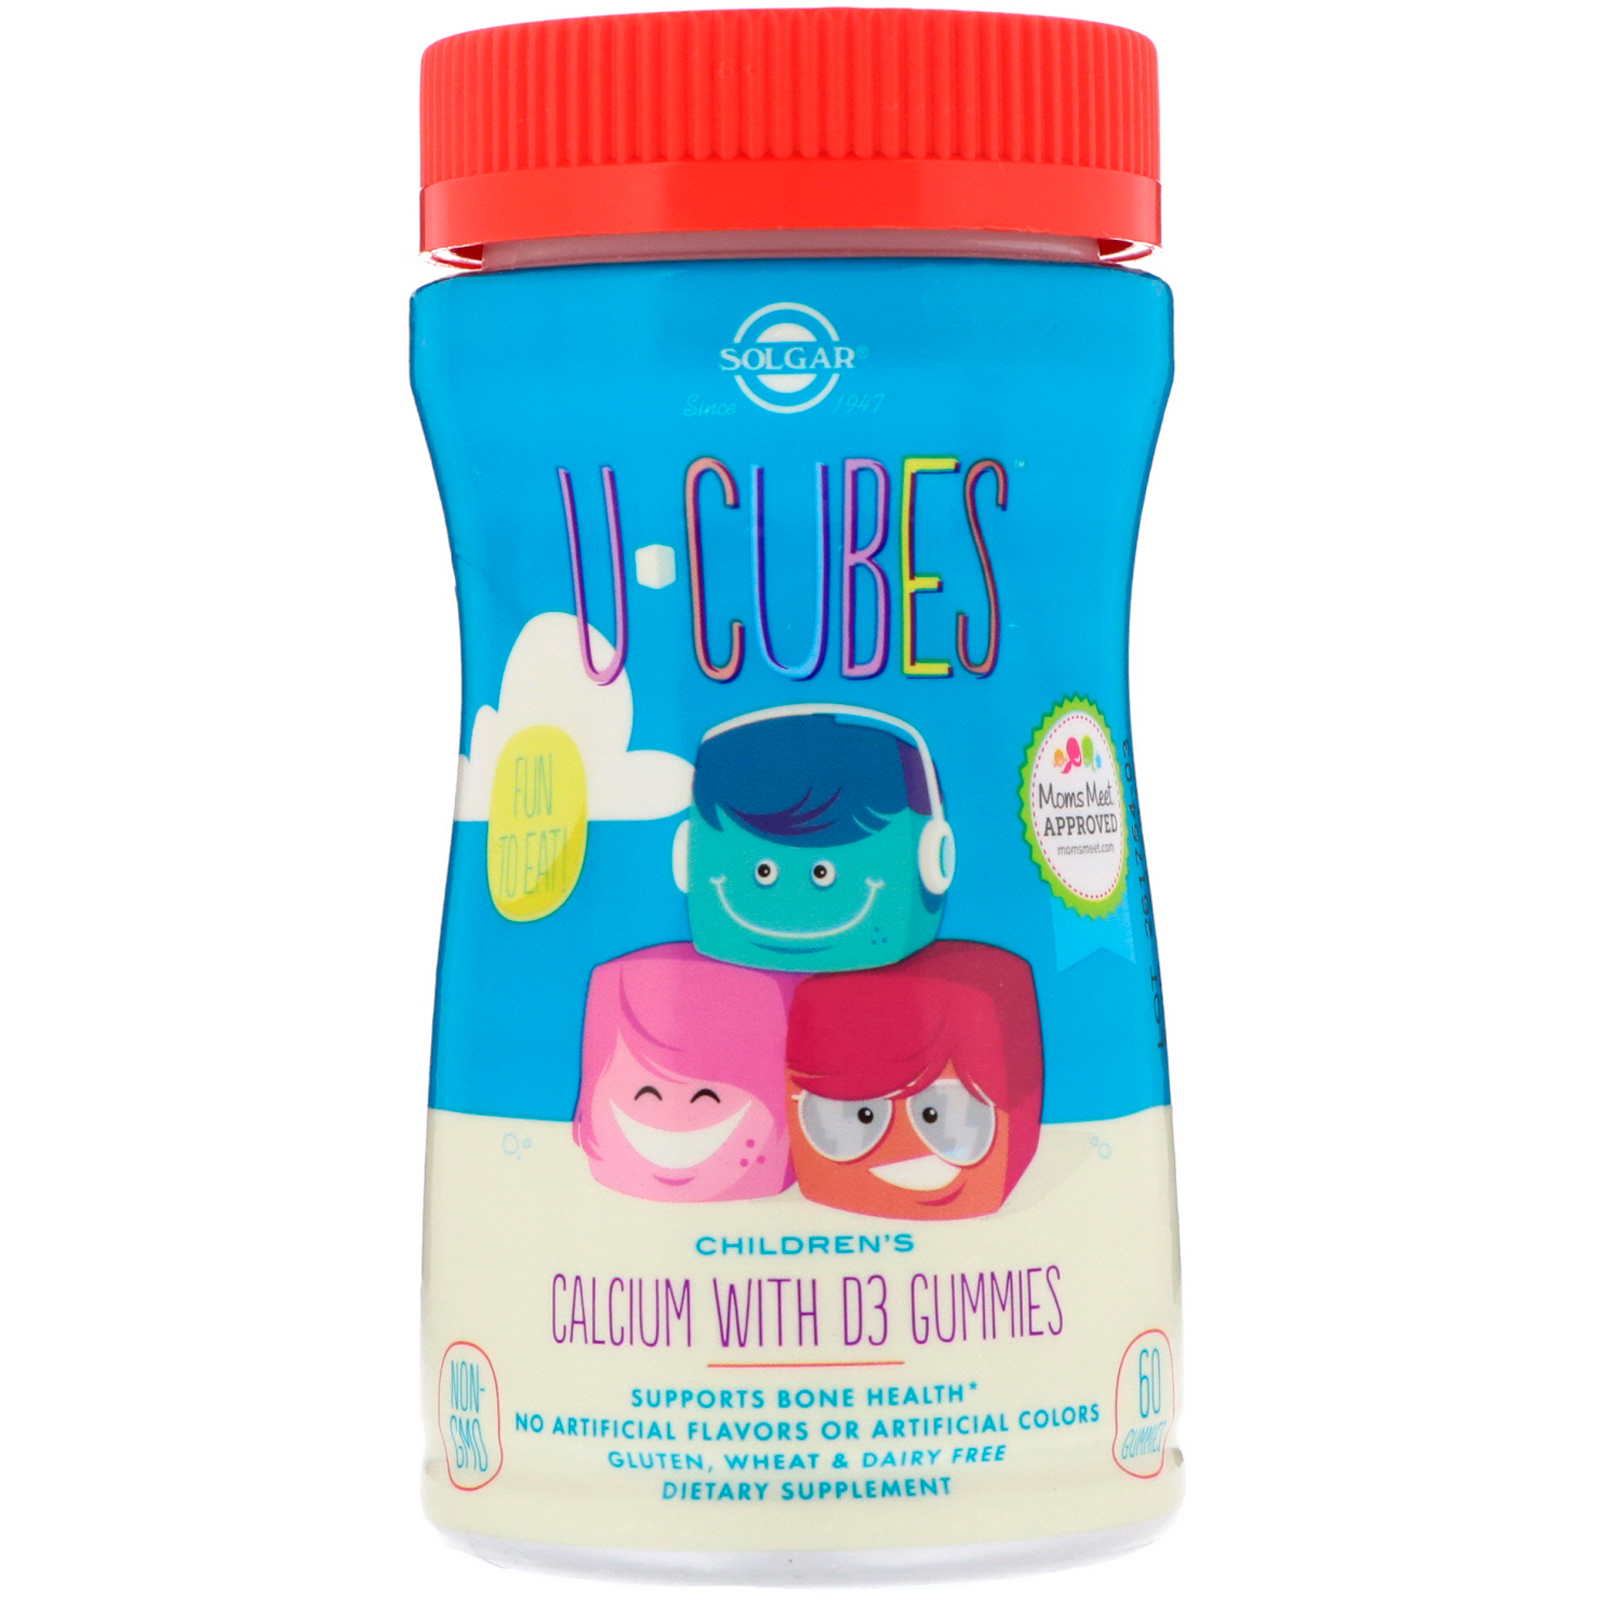 Solgar, U-Cubes, Children s Calcium With D3, Pink Lemonade, Blueberry,  Strawberry Flavors, 60 Gummies - iHerb.com 8b93c07e80ee